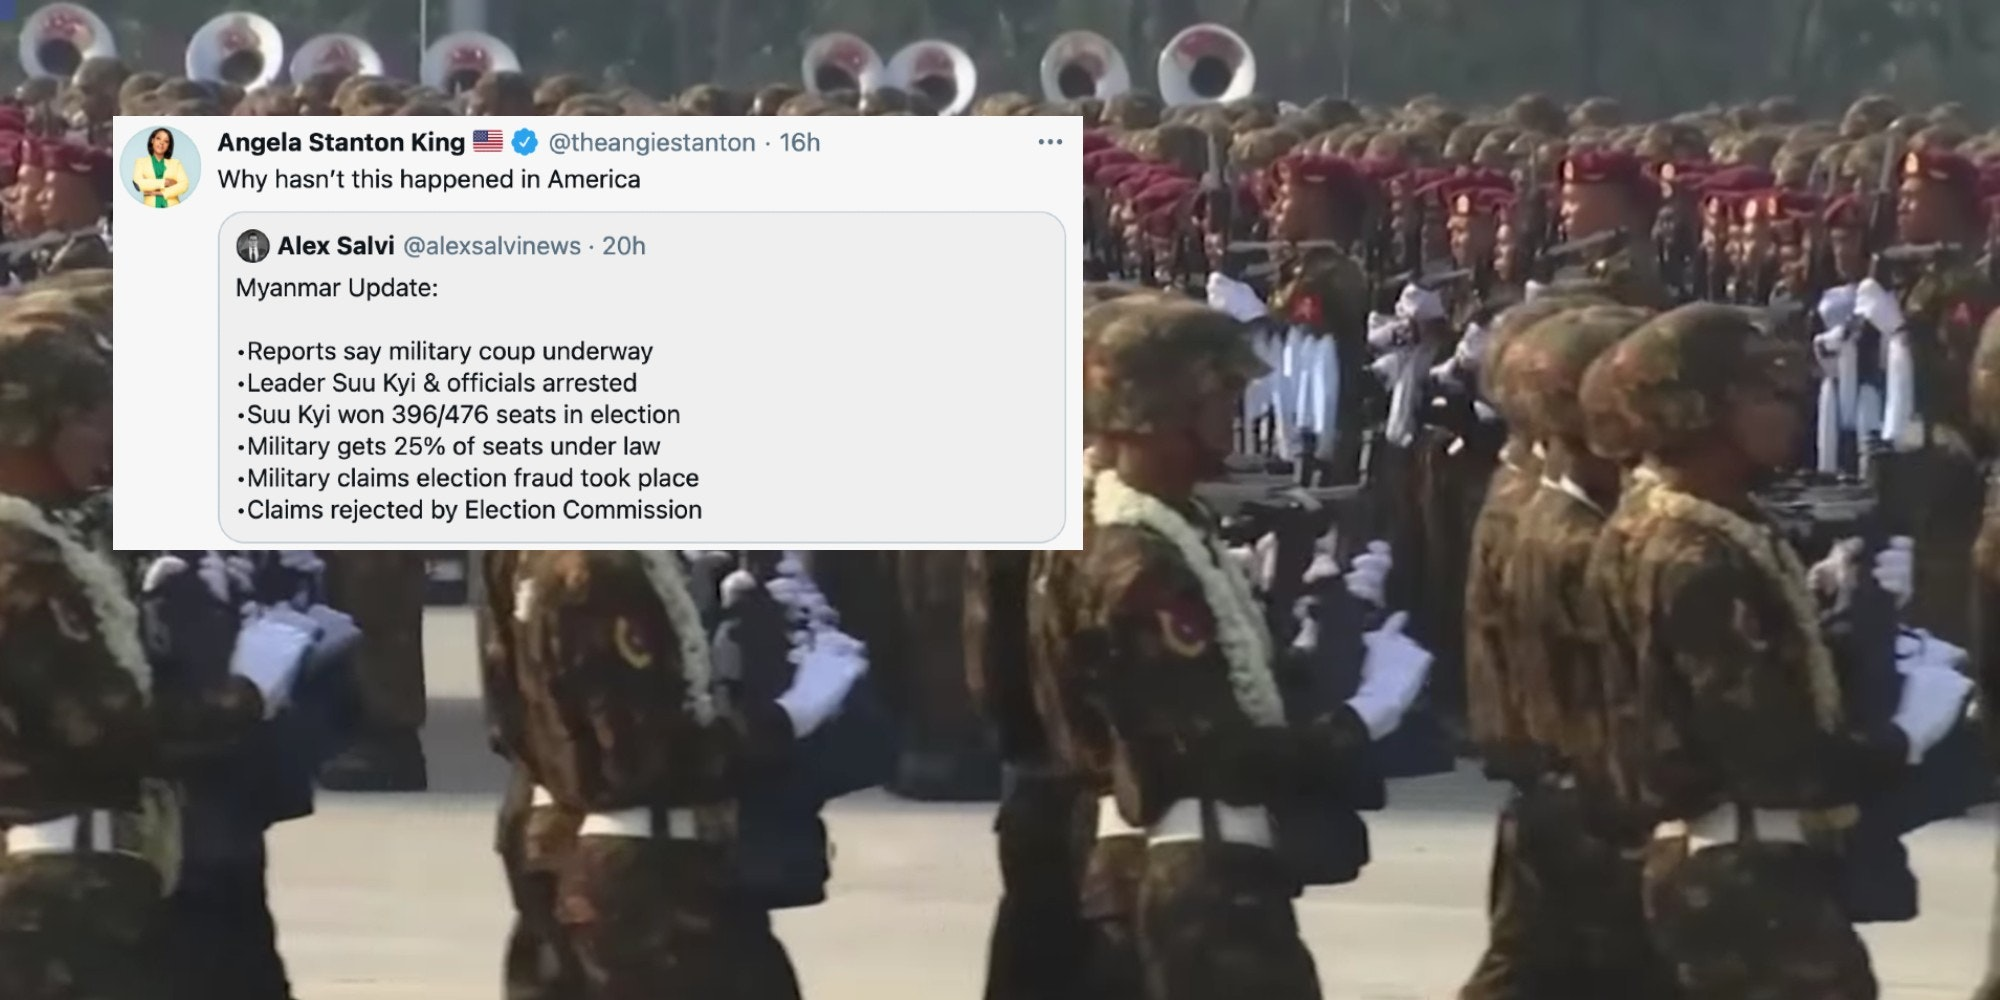 A tweet from Angela Stanton King over the Myanmar military